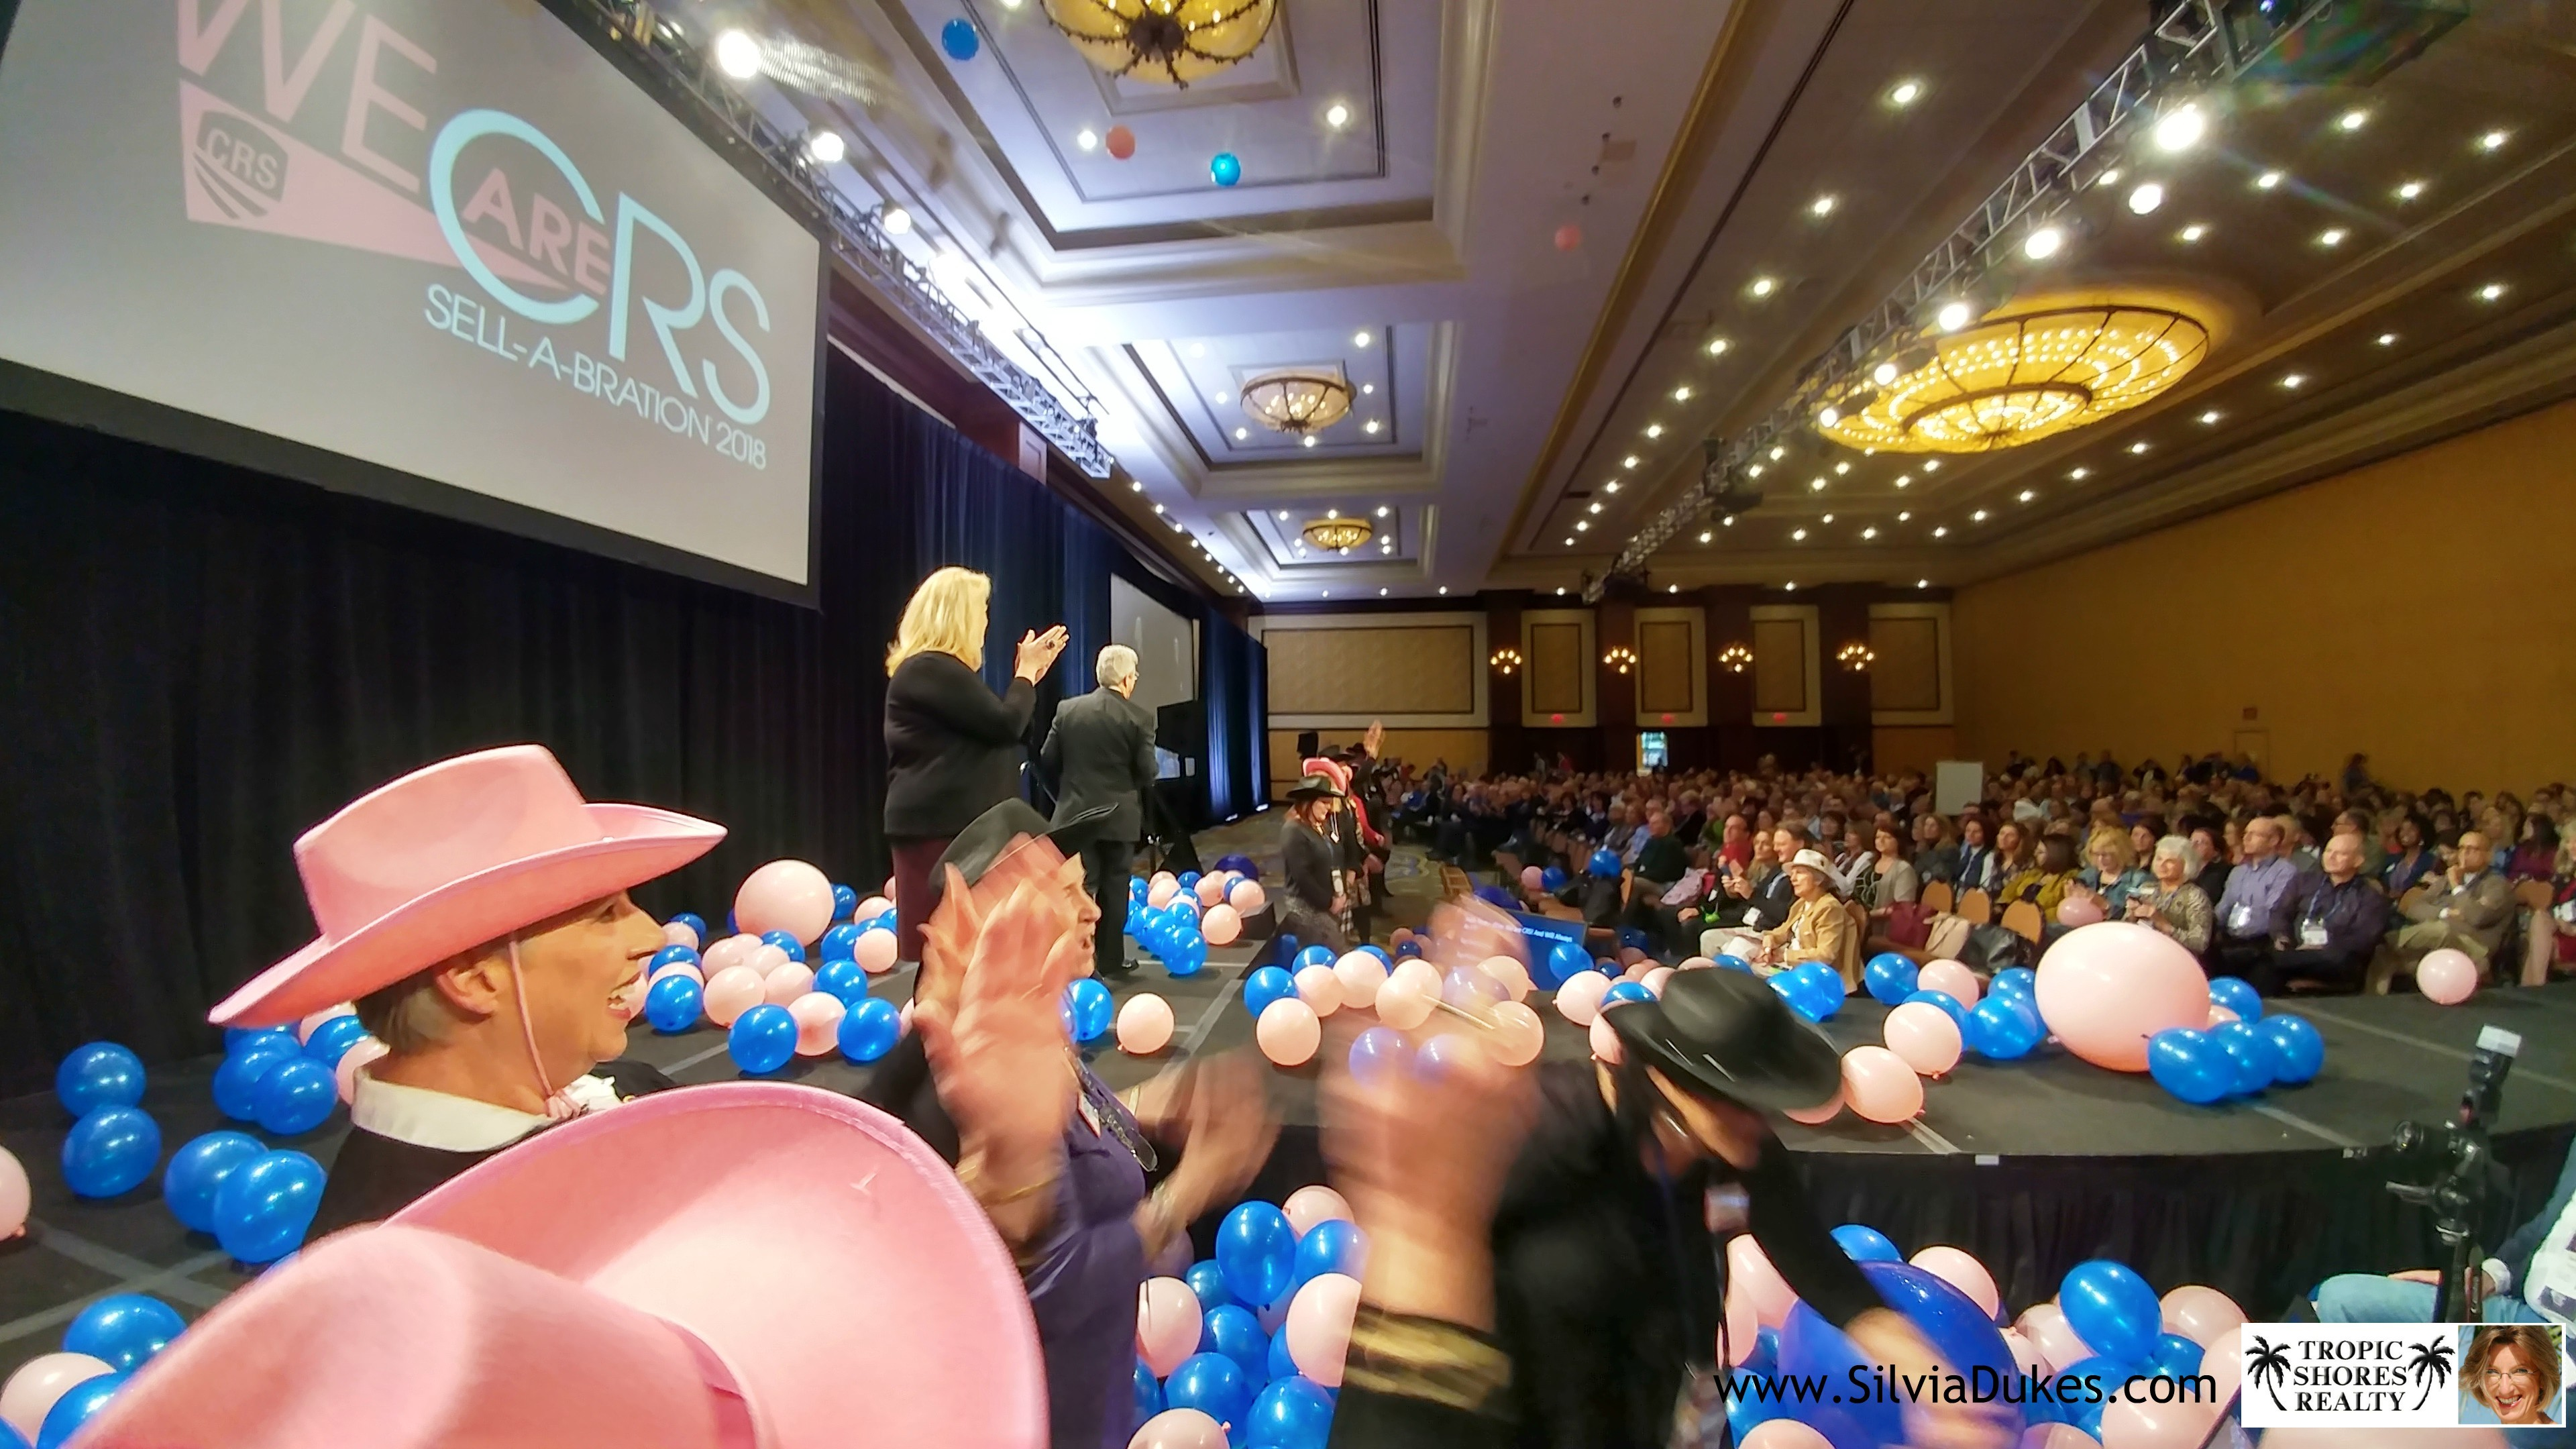 CRS Sell-a-bration 2018 Opening Session with Mel Robbins Photo by Silvia Dukes